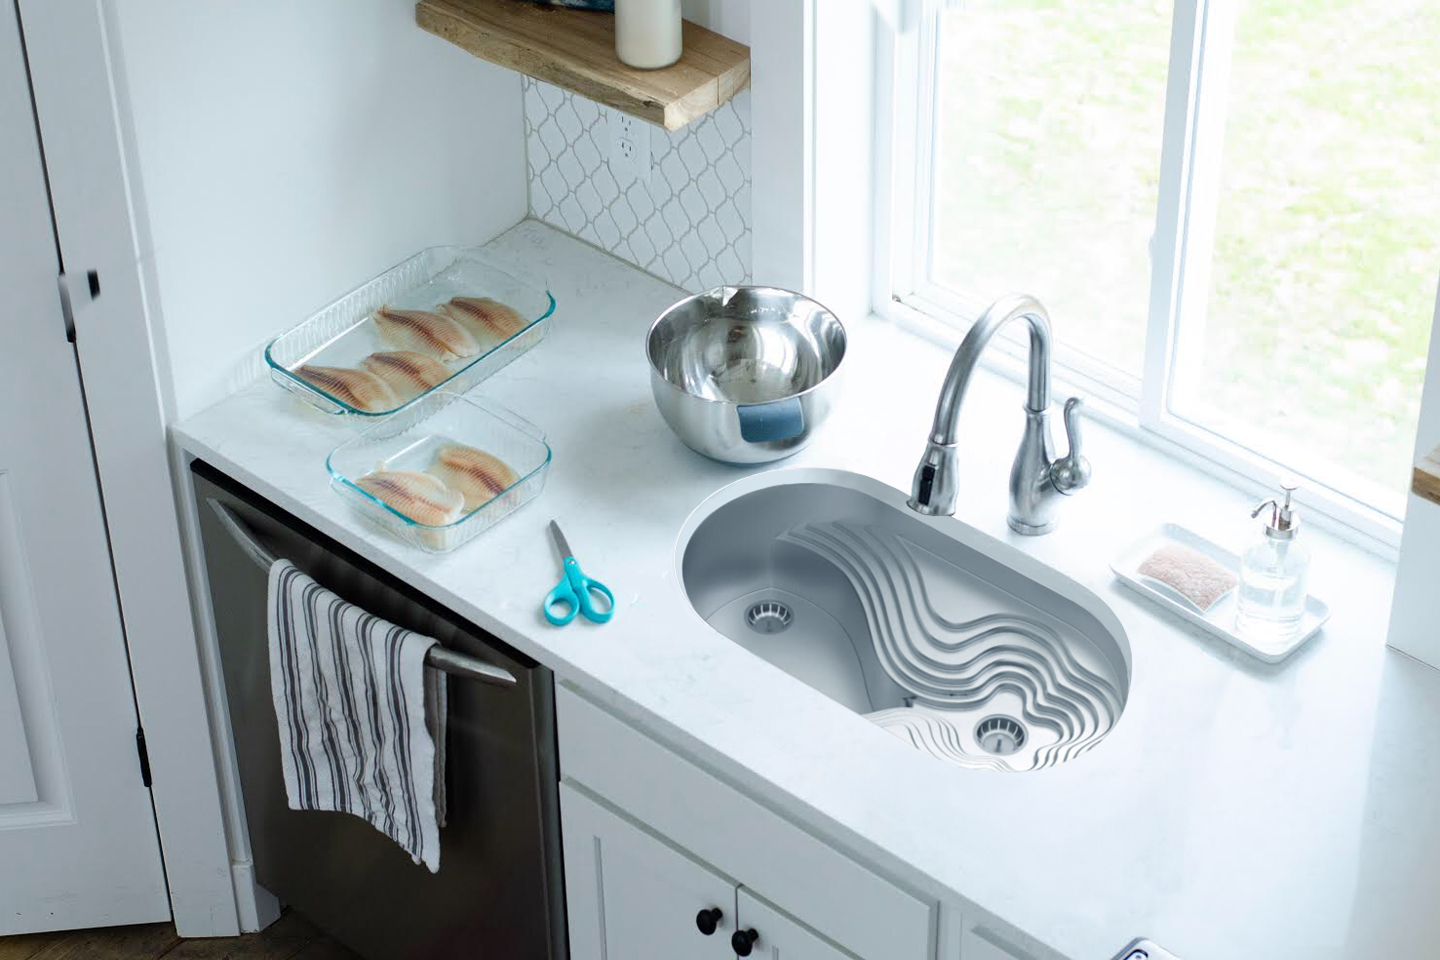 This redesign of the kitchen sink was built on a scheme of chamfers and angled edges for one-handed users to use as leverage!